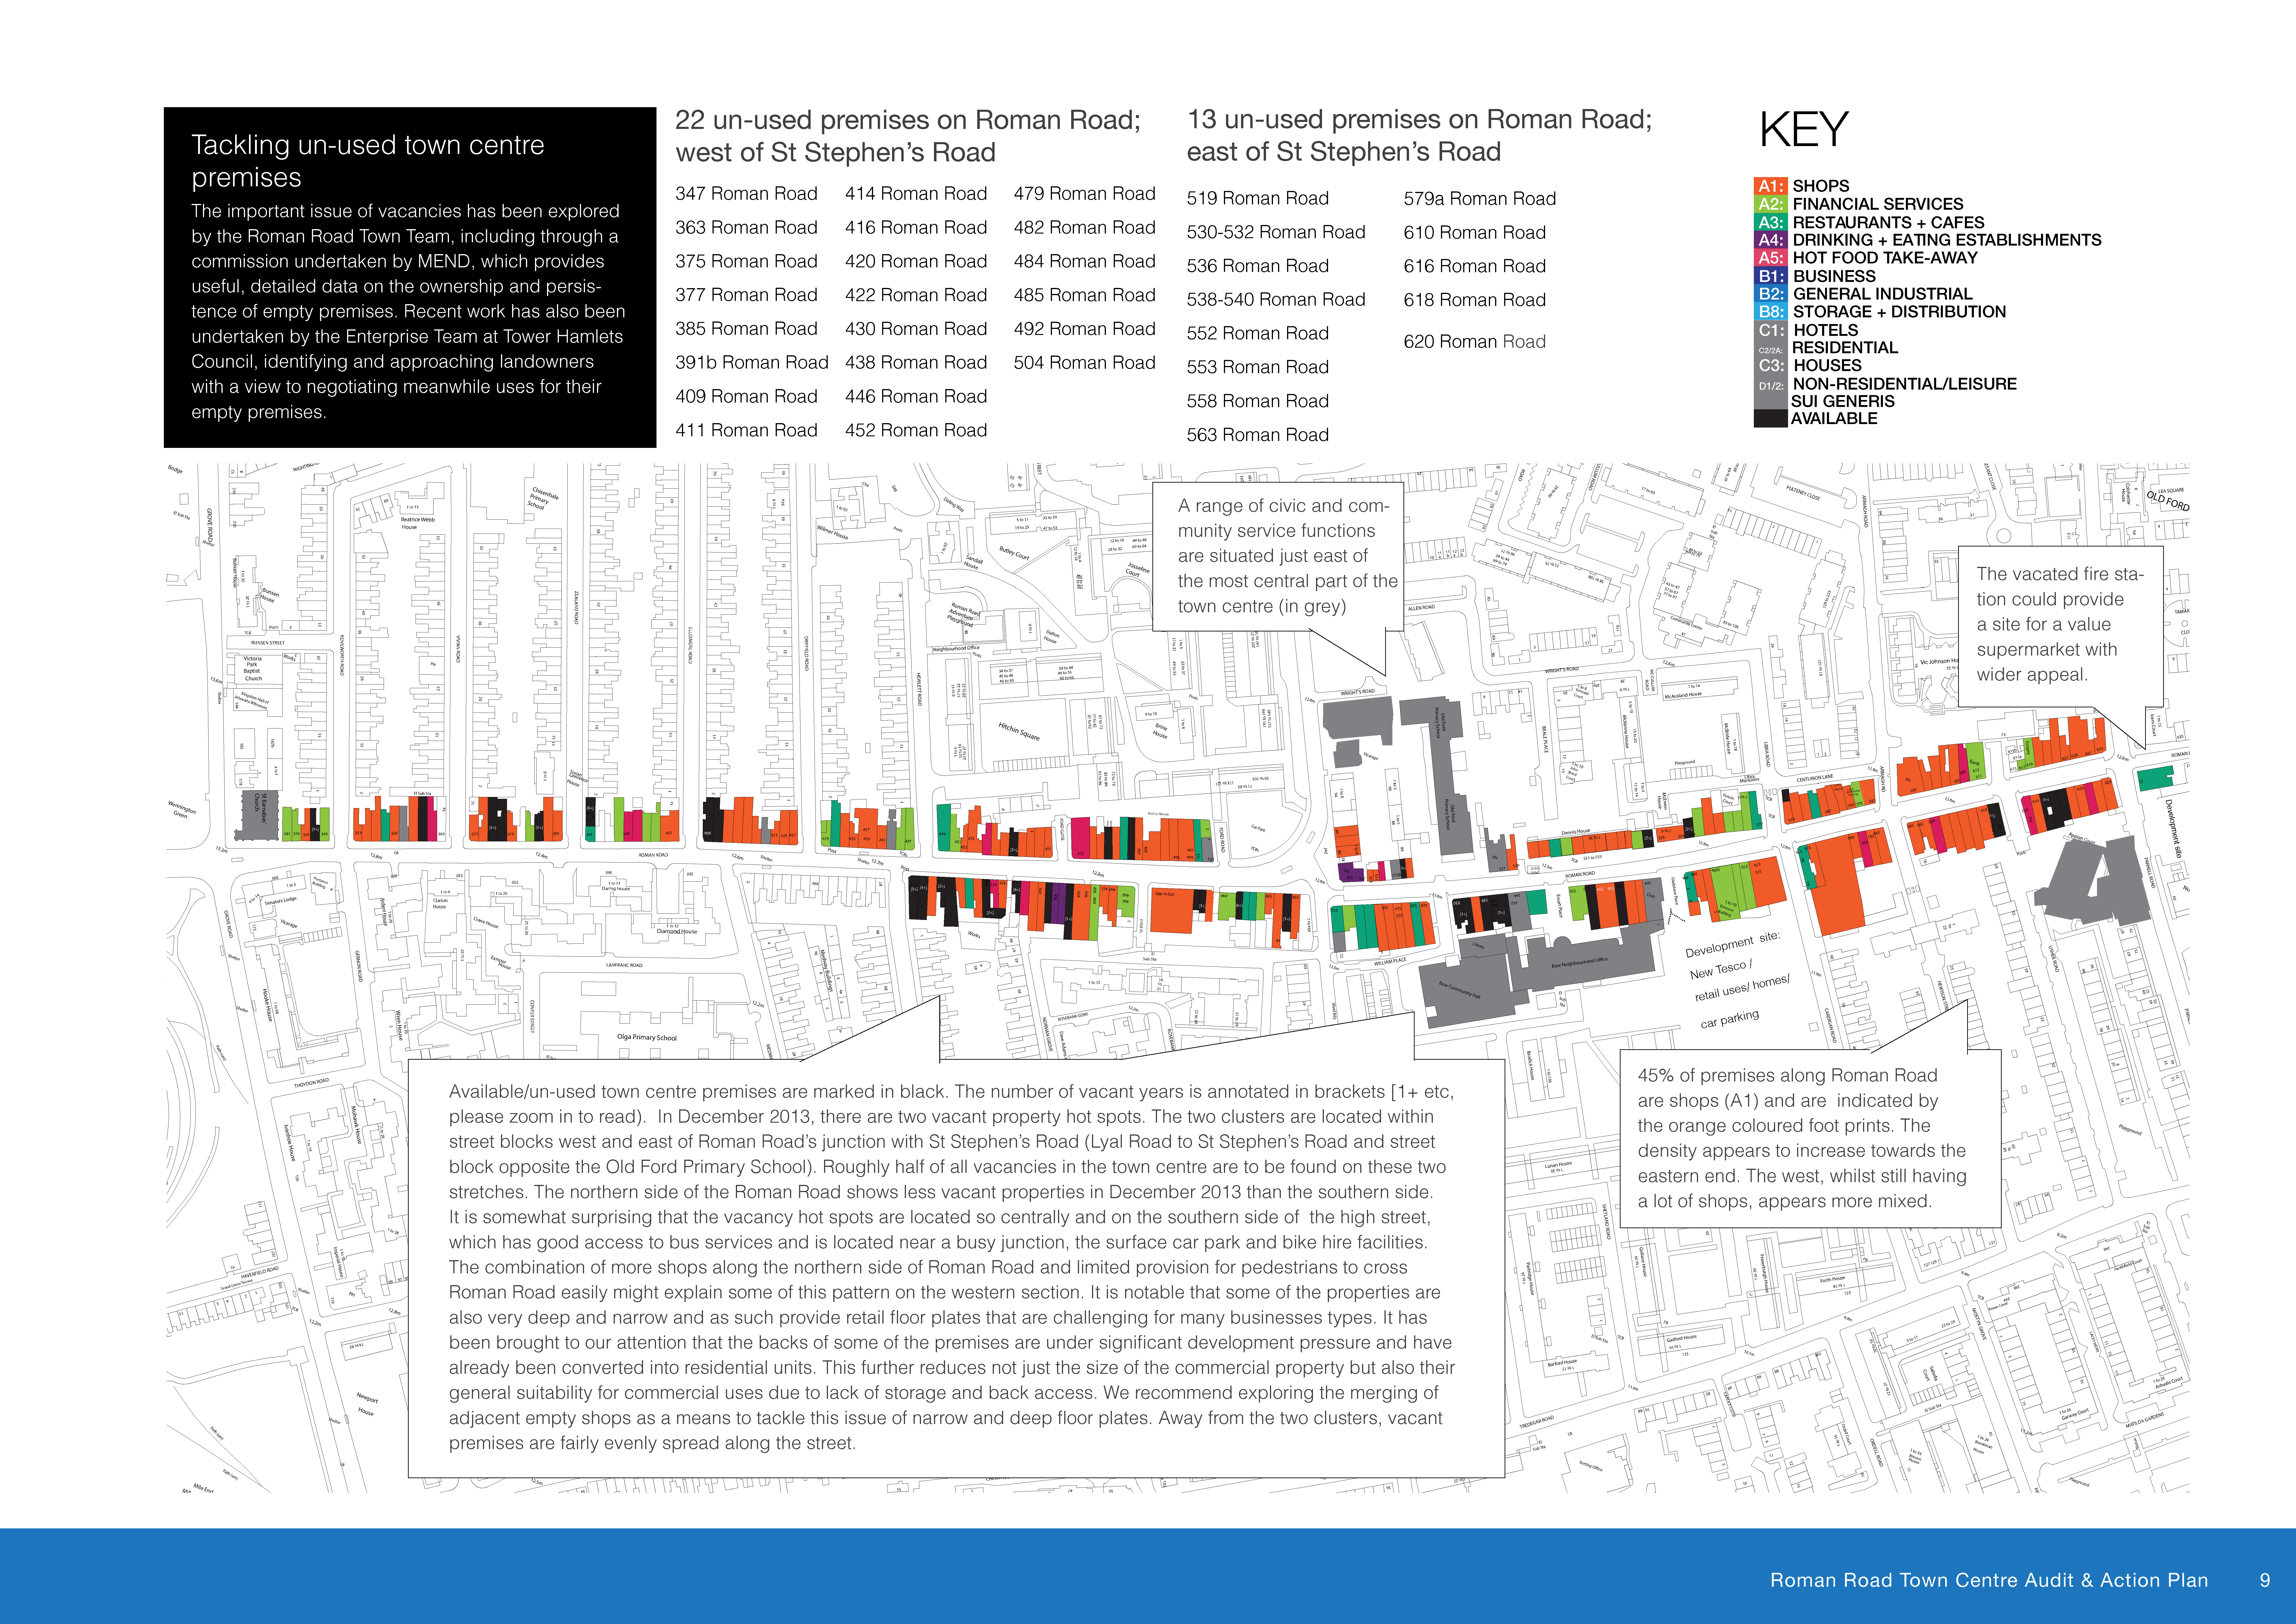 RomanRoad Town Centre Audit_APlanlowRES.jpg